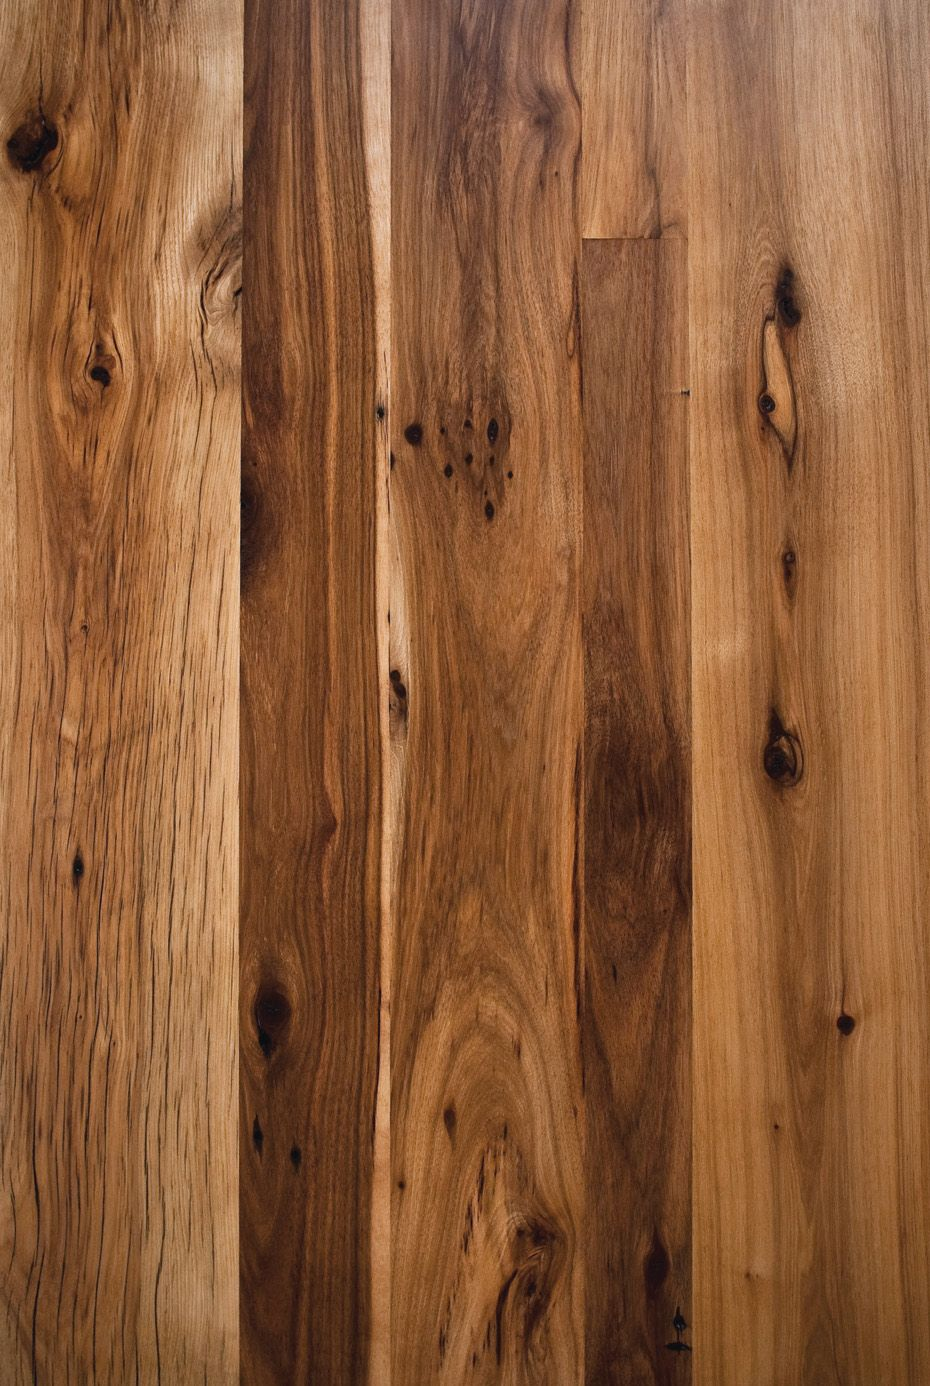 Hickory wood floors reclaimed antique flooring hickory for Reclaimed flooring